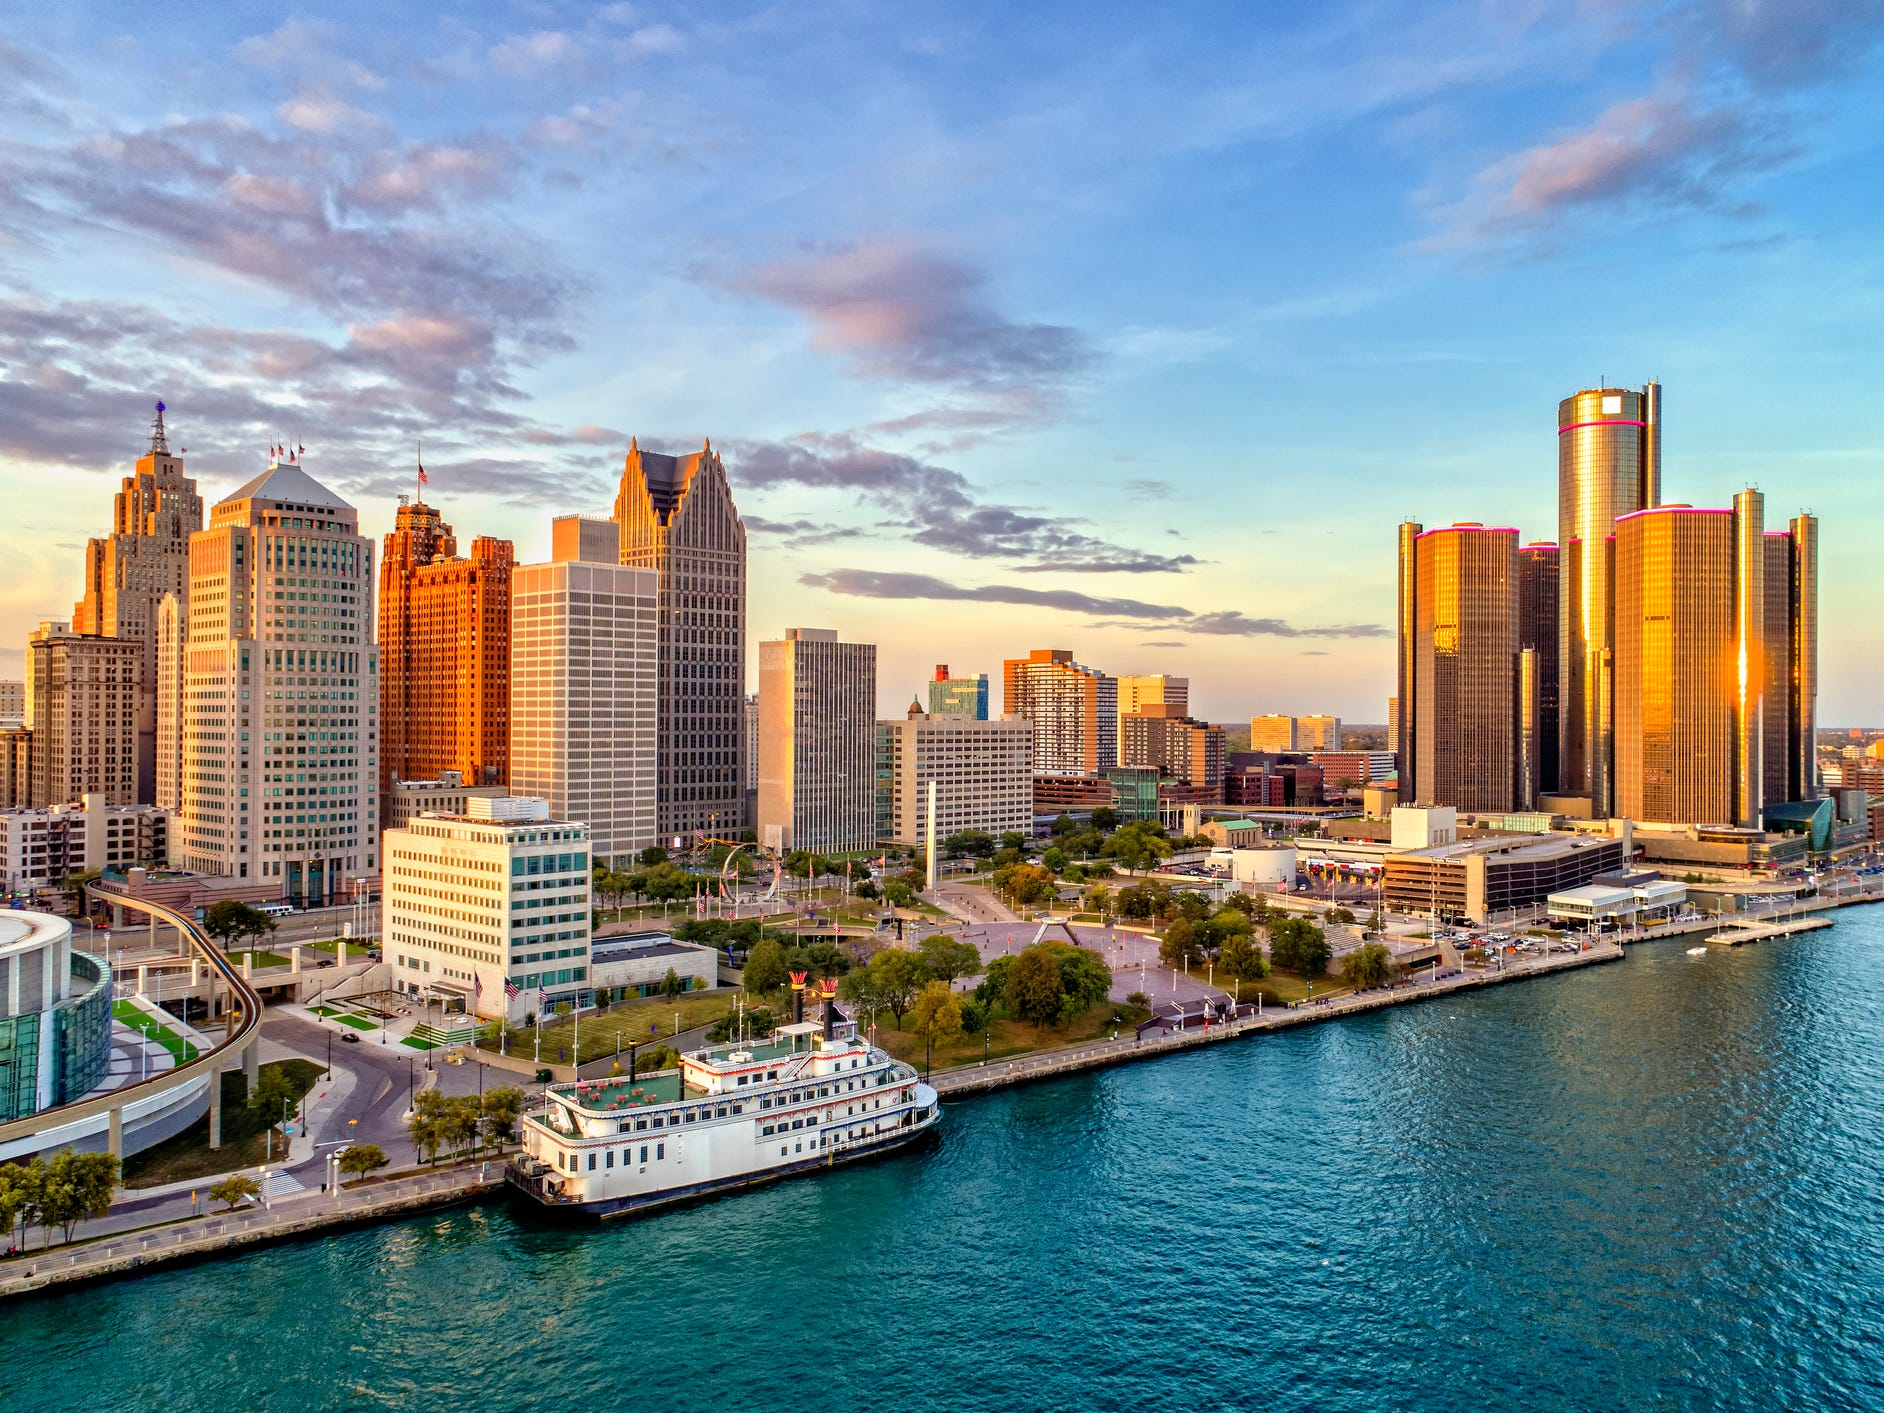 A great spring break trip doesn't need to break the bank. Here are Expedia's top 20 destinations where round-trip airfare costs $500 or less. No. 1: Detroit.